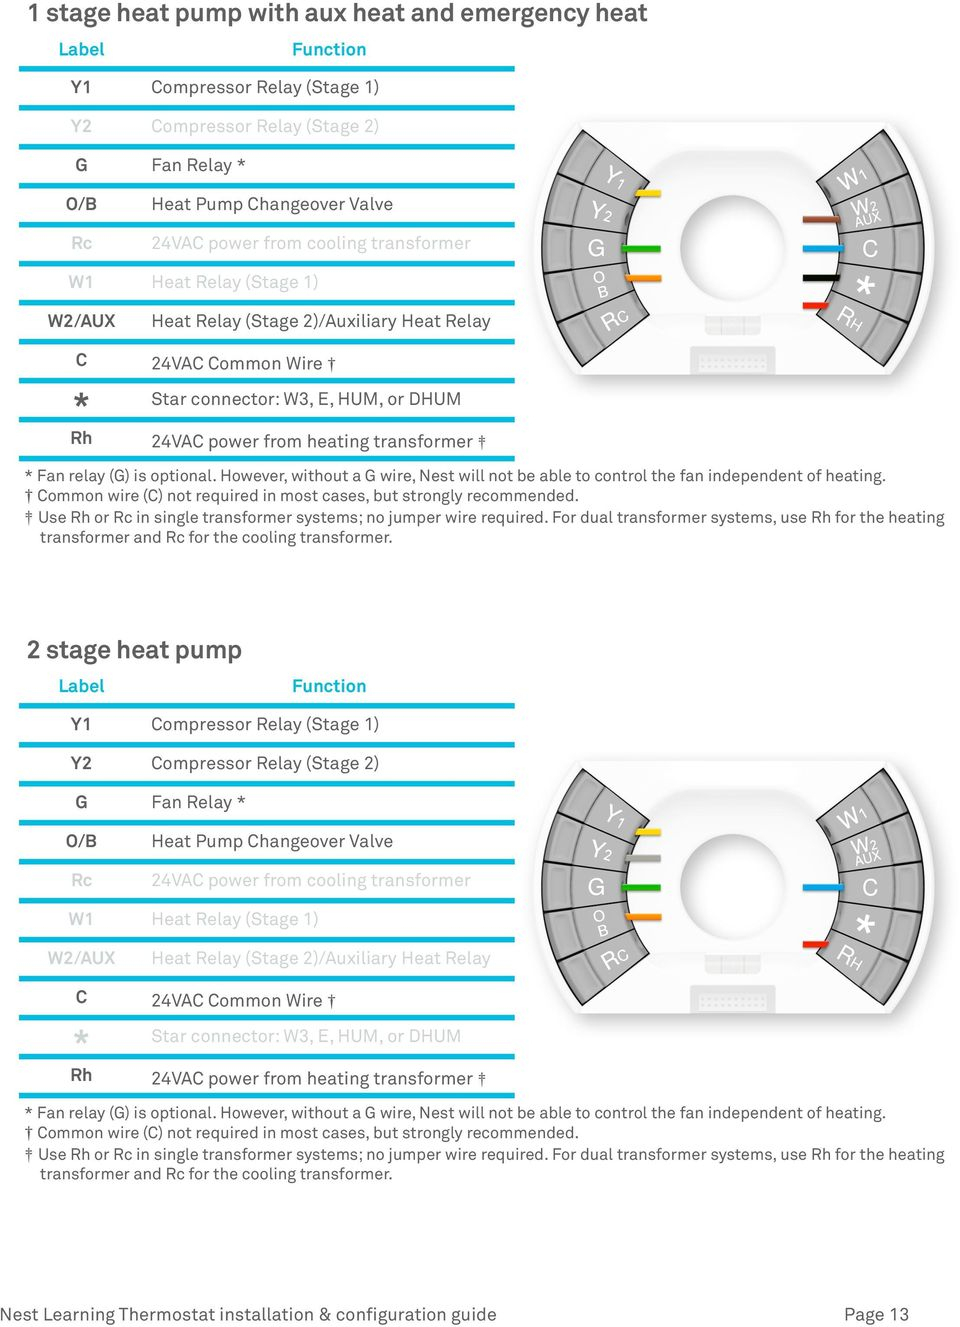 Nest 2 Stage Heating Wiring - Wiring Diagrams Click - Nest 2 Wire Wiring Diagram